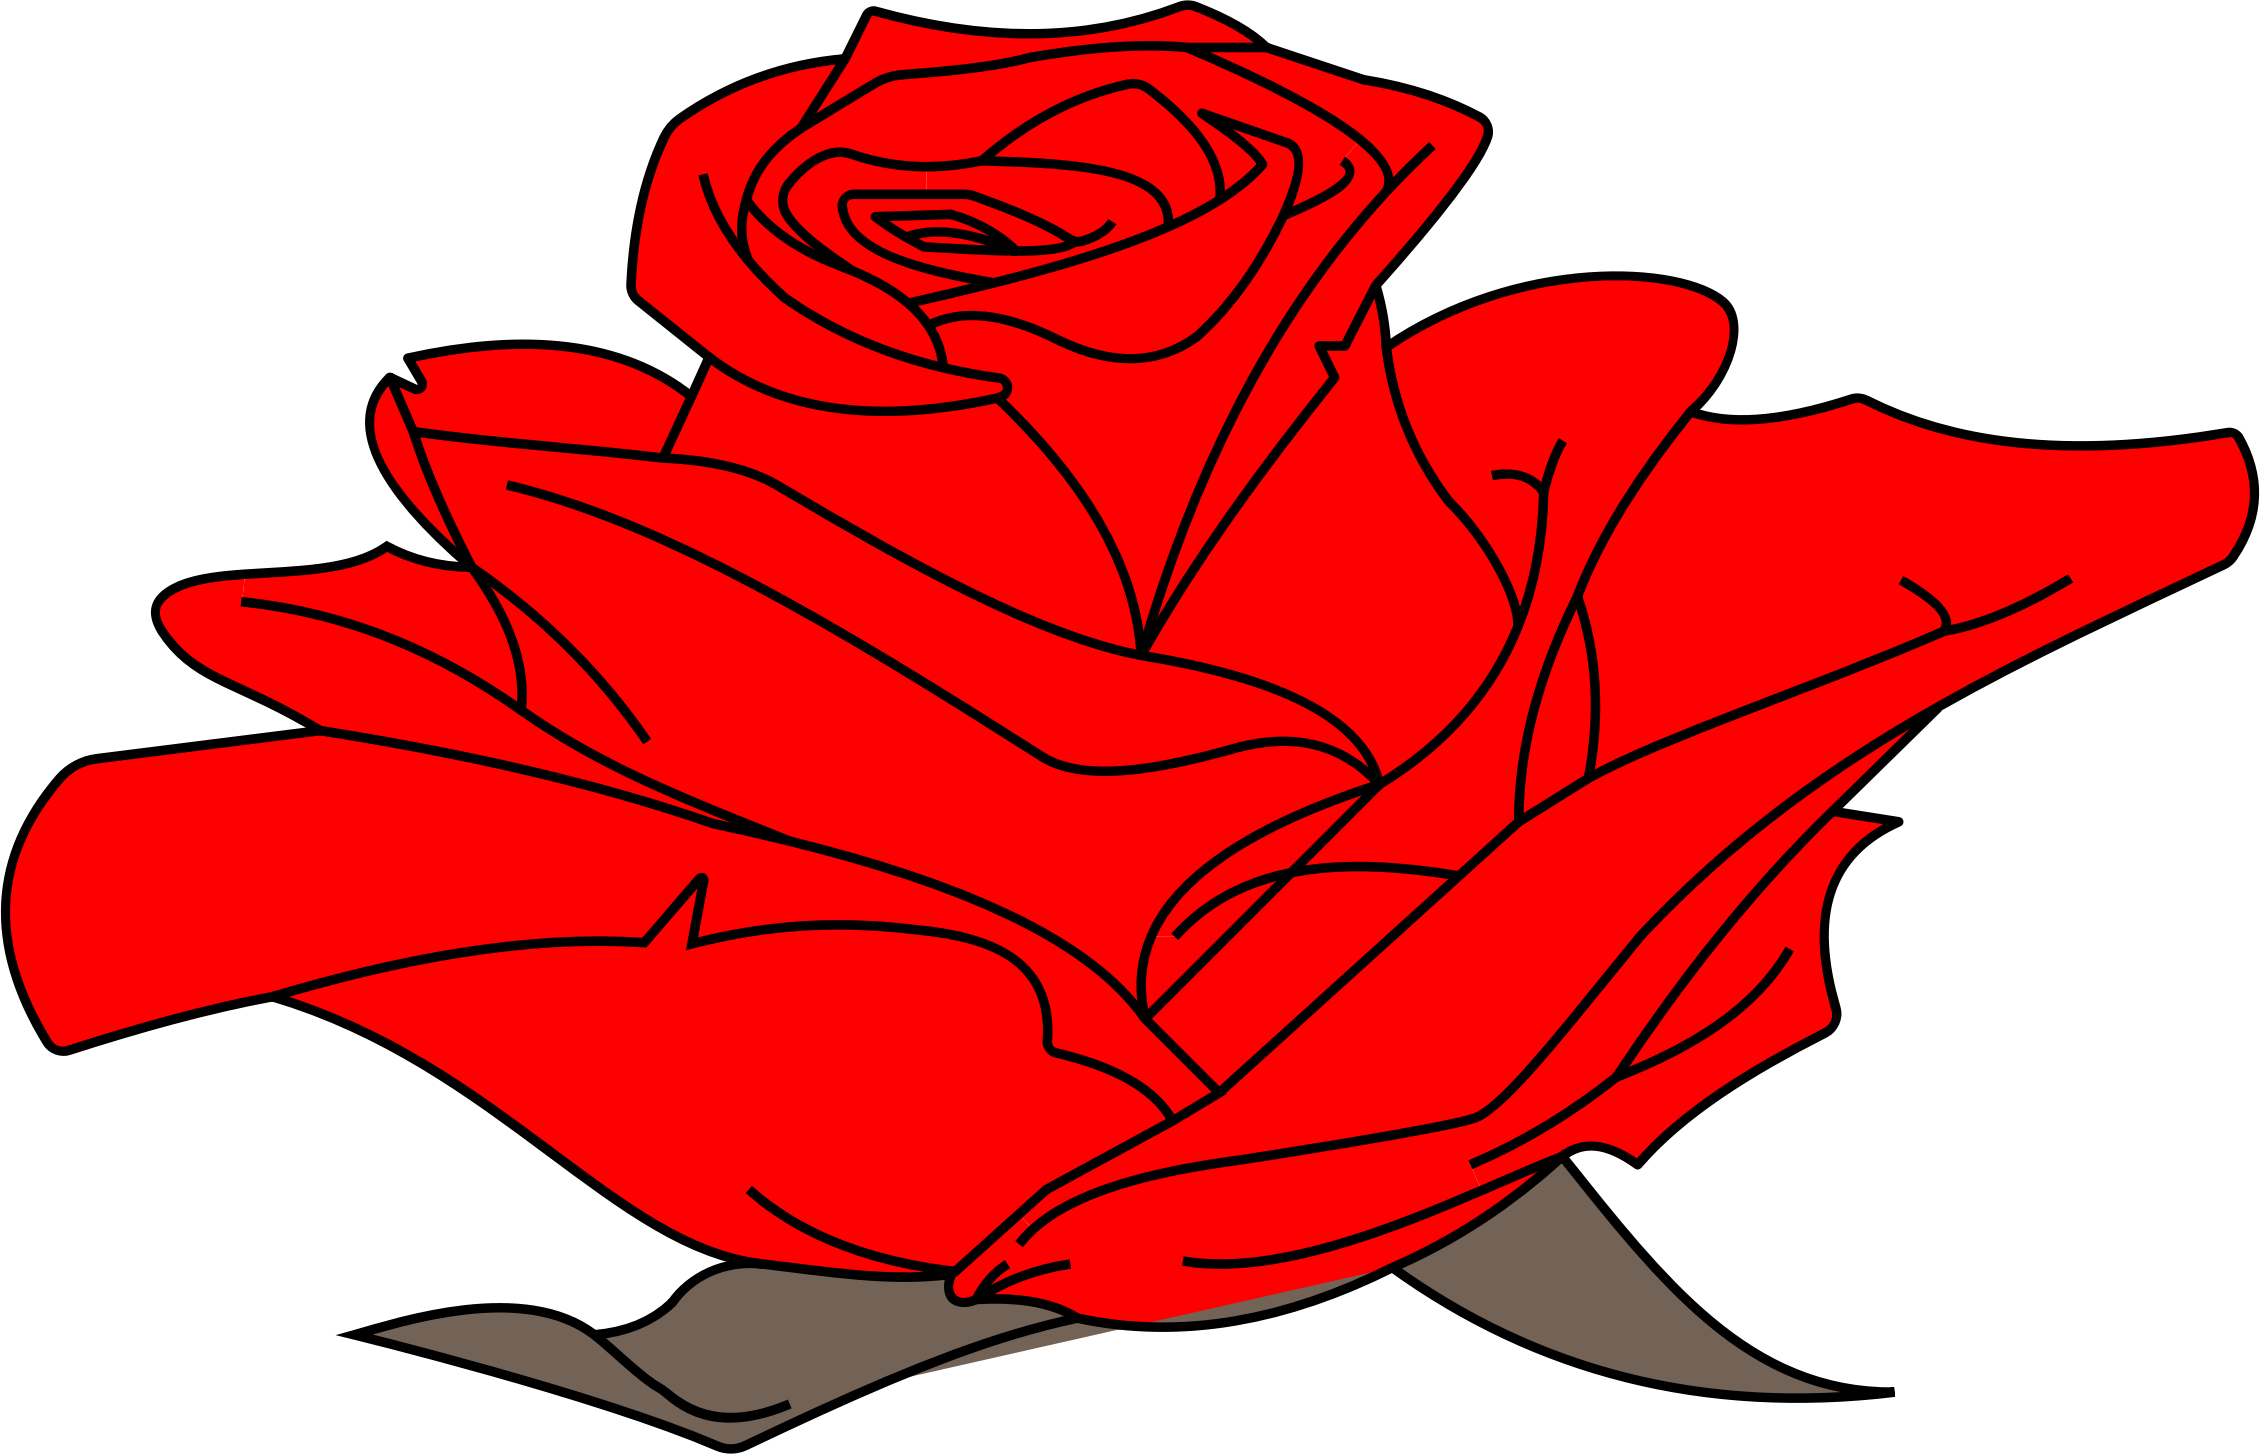 Colored Rose Line Art by GDJ